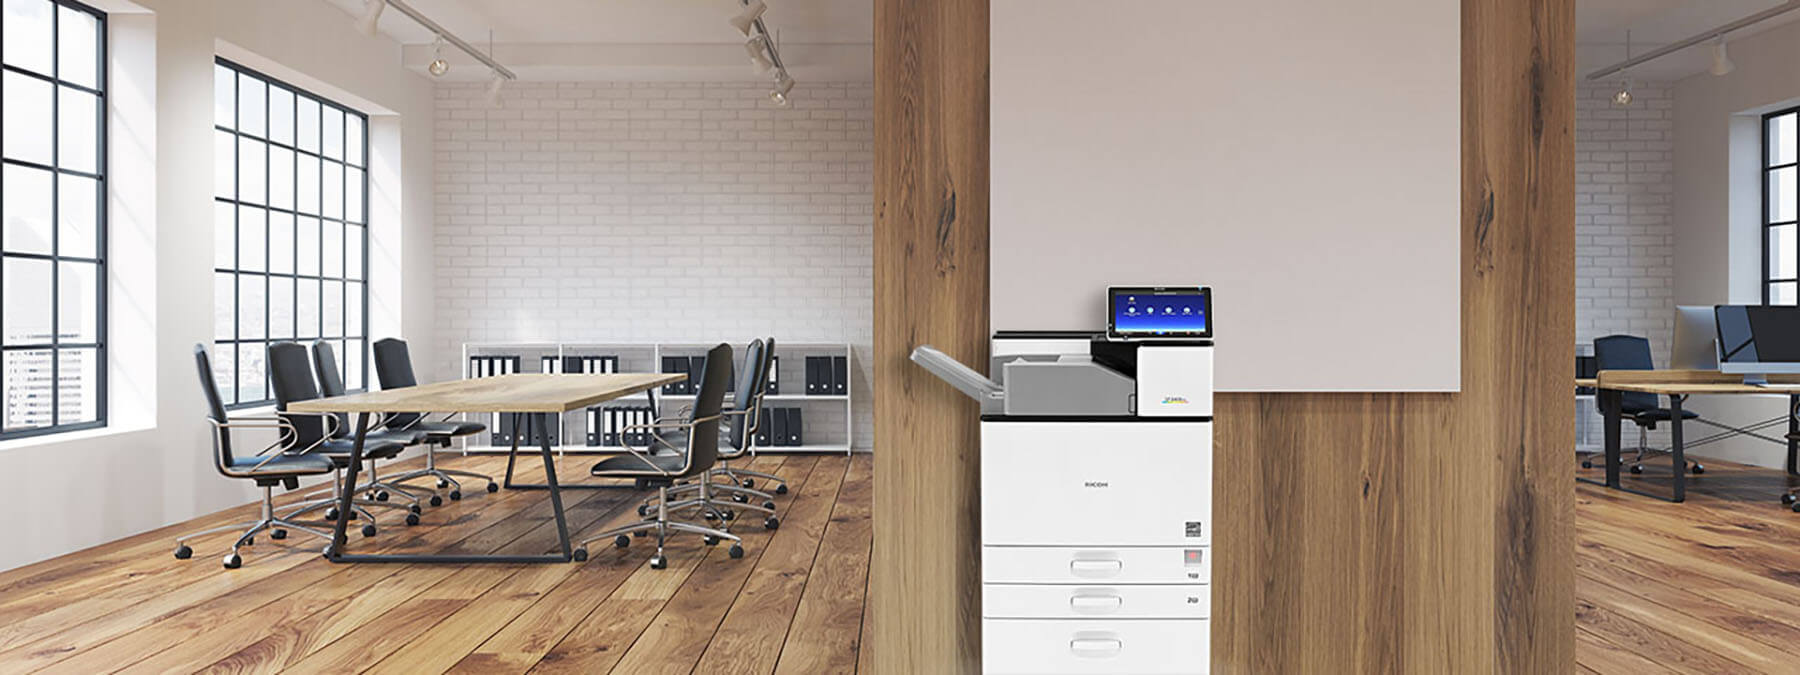 Printer provided by EBP